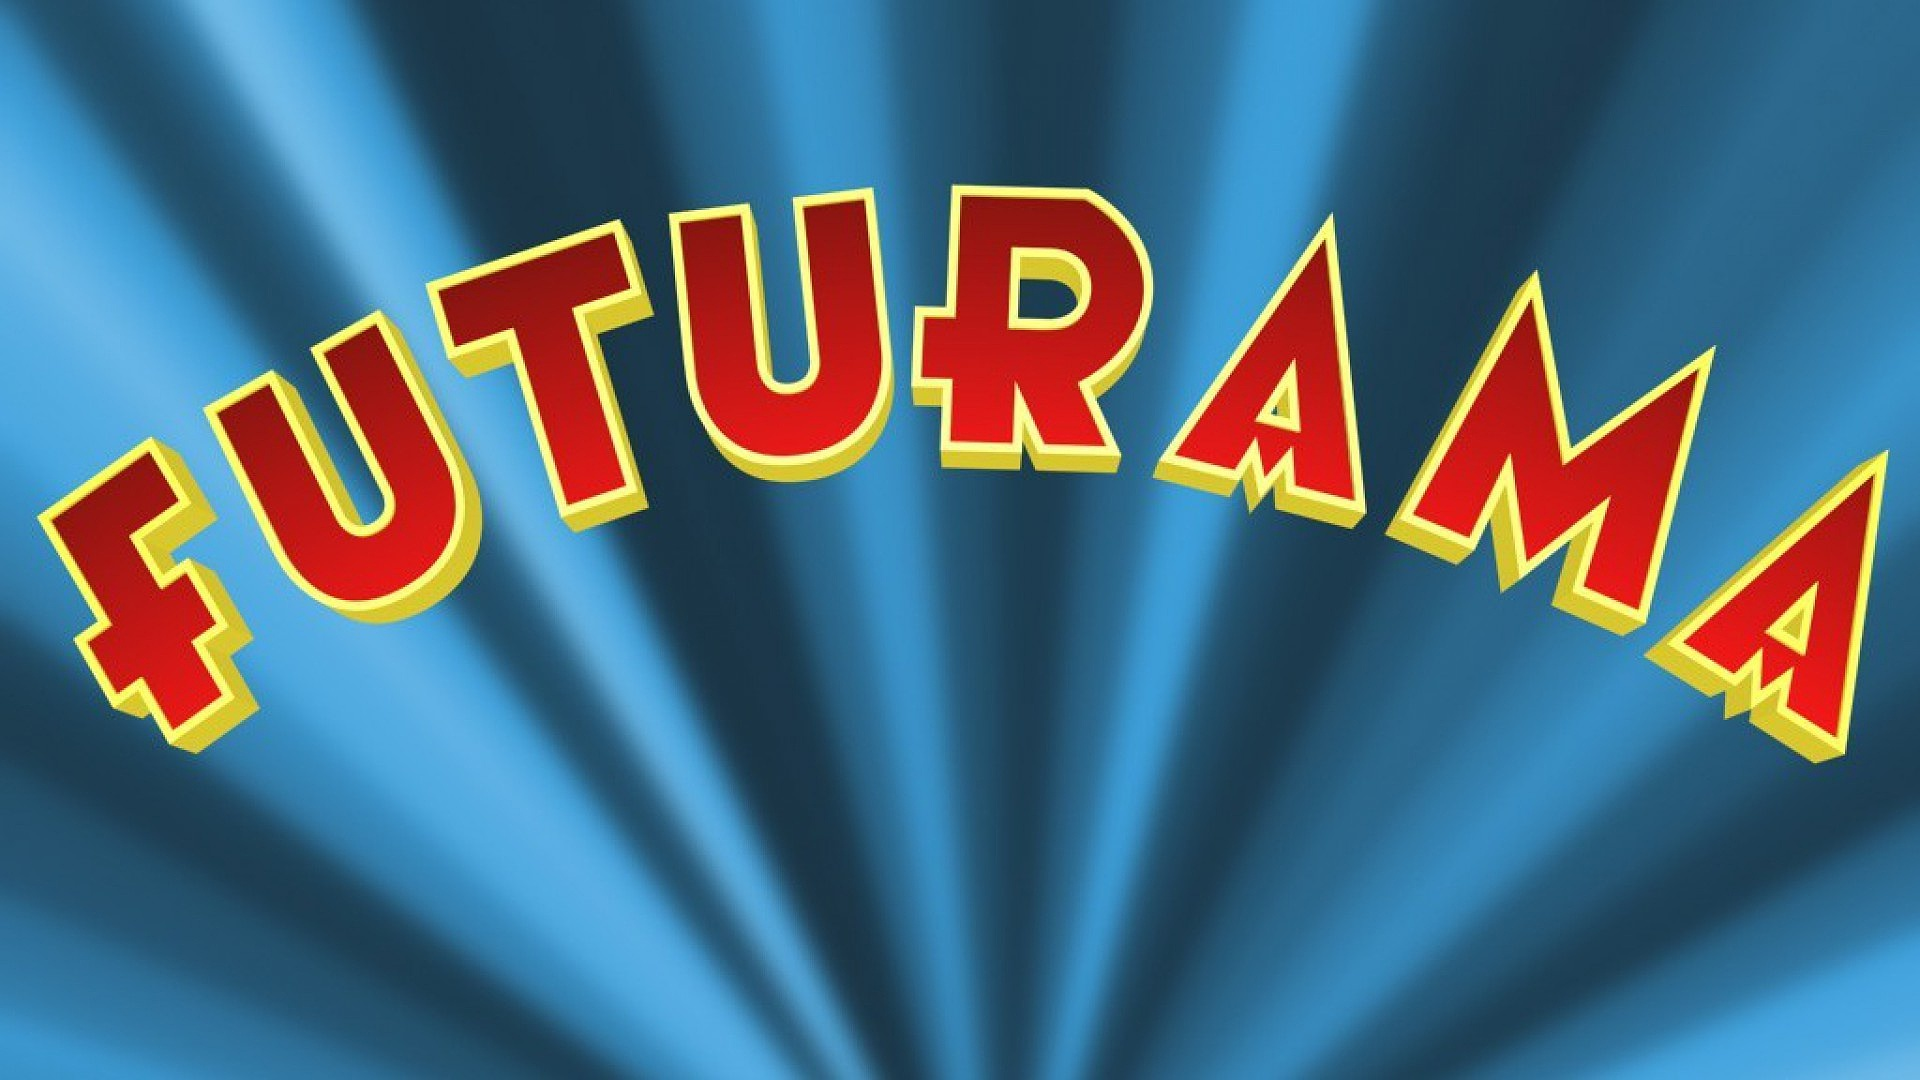 Story Influence: Futurama